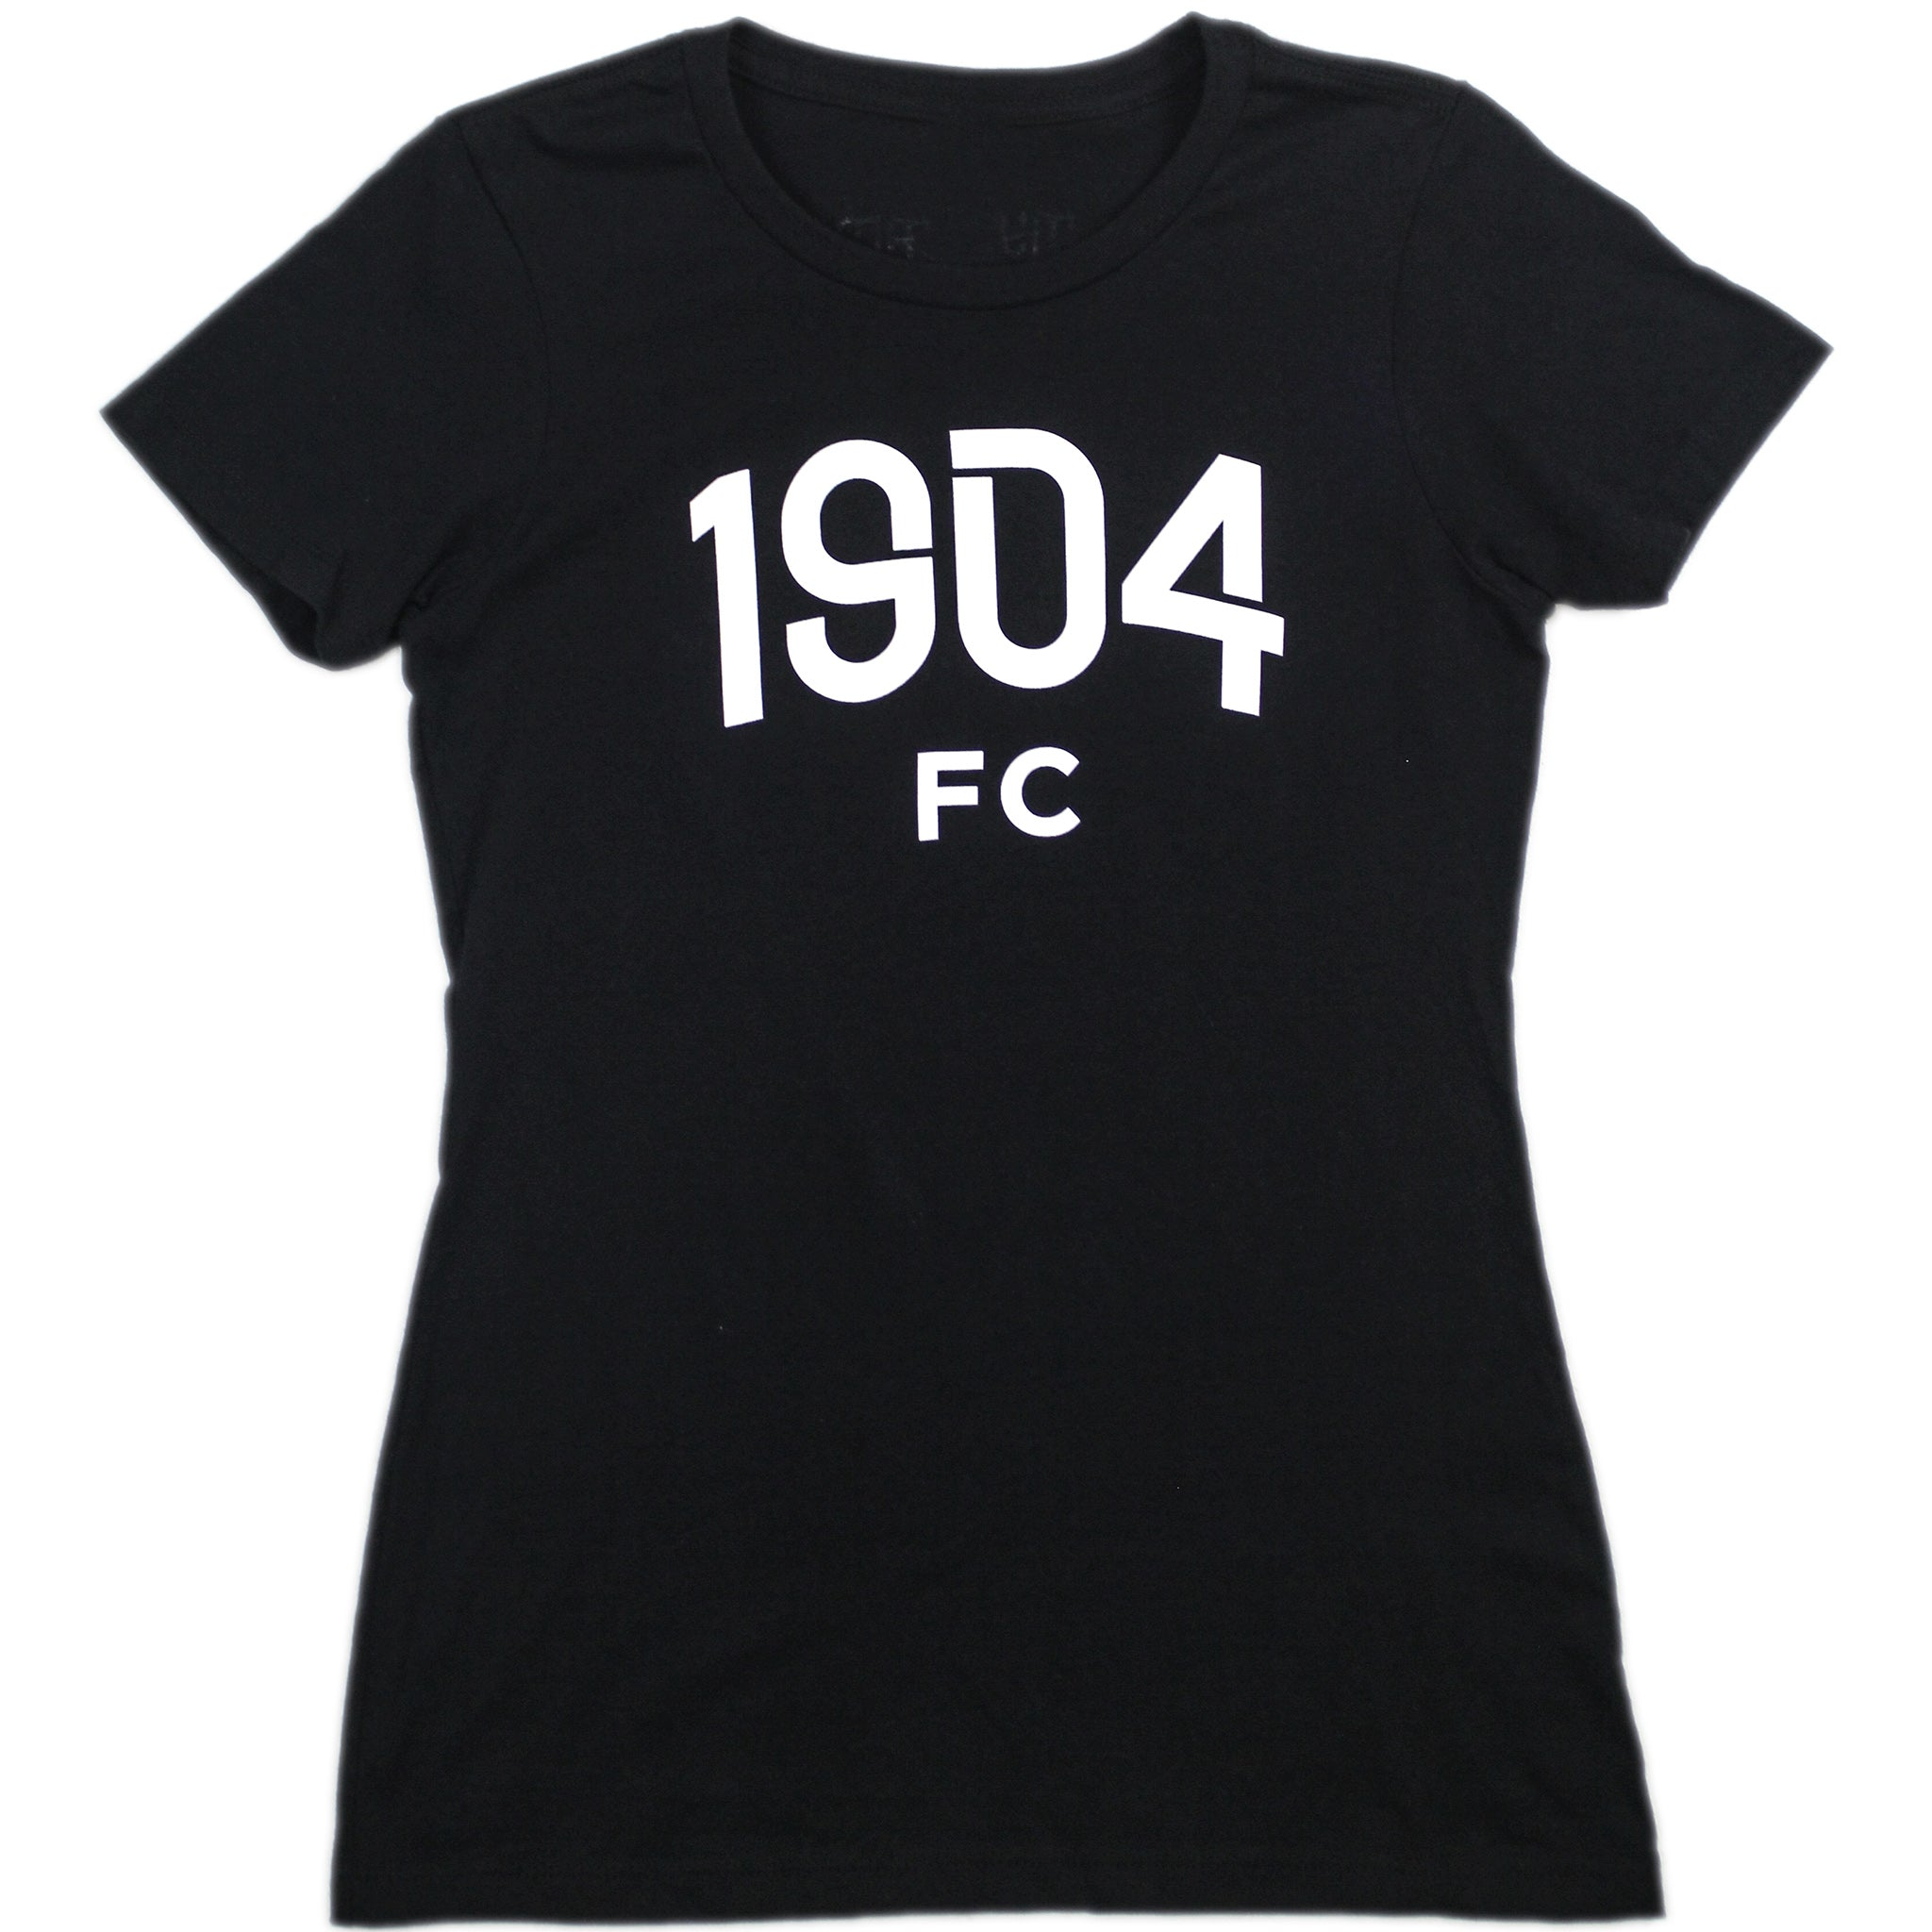 Origin Women's Tee - Black